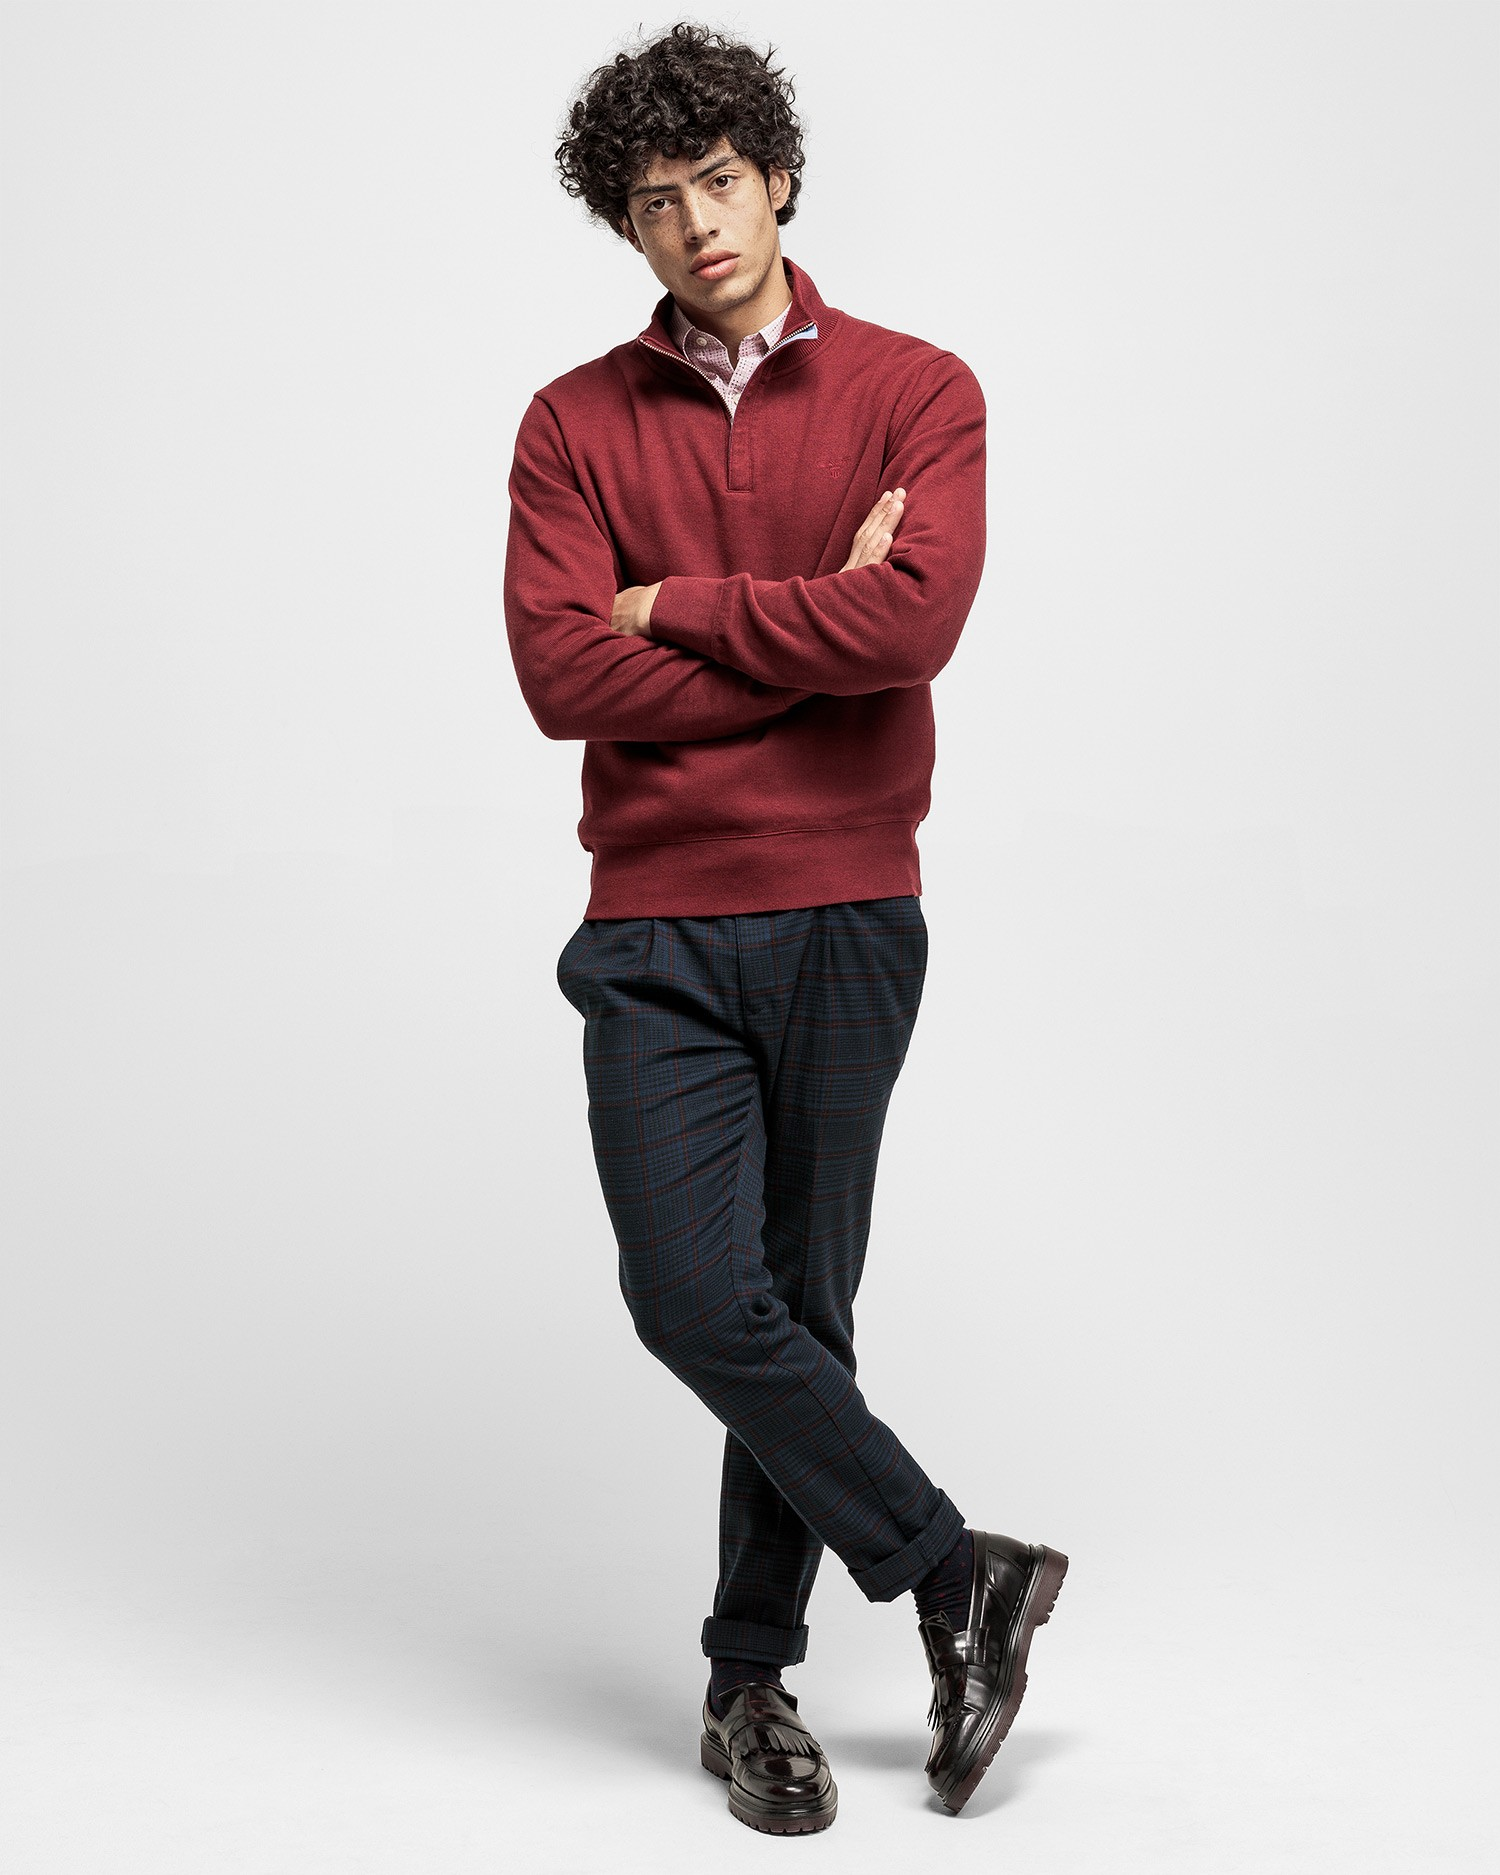 GANT Men's Sacker Rib Half Zip Sweatshirt - 2028005